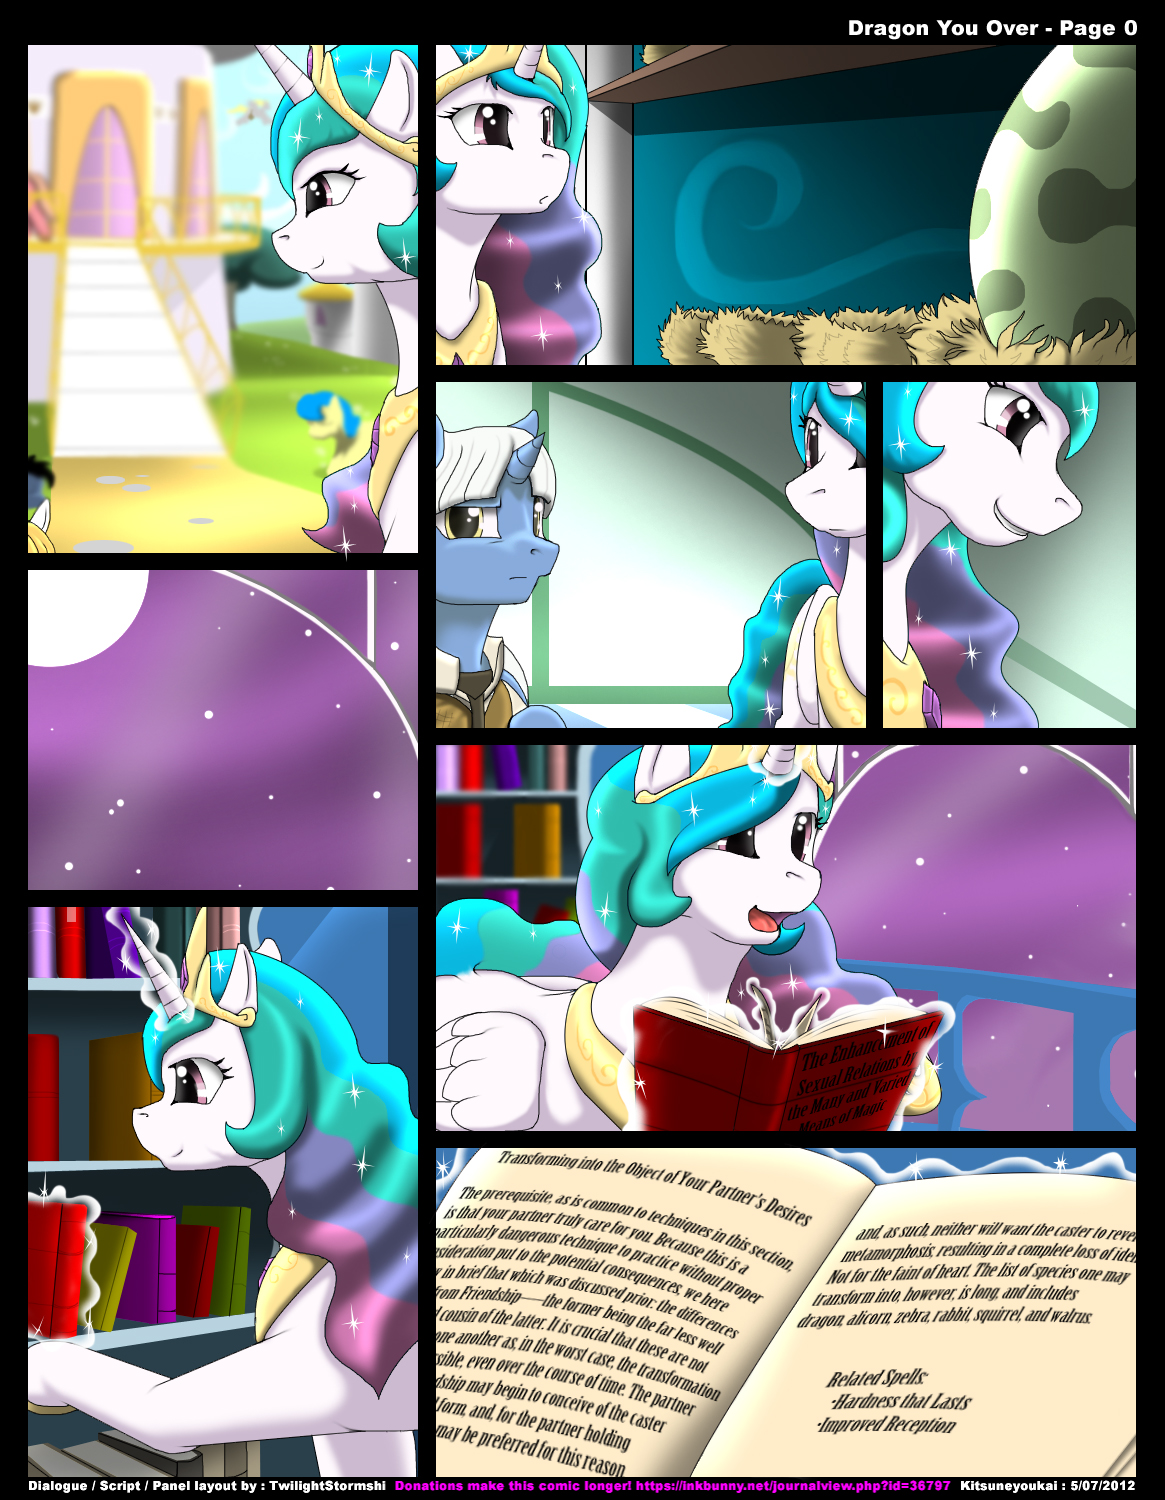 [Kitsune Youkai] Dragon You Over (My Little Pony: Friendship Is Magic) (6-18-12 UPDATE)